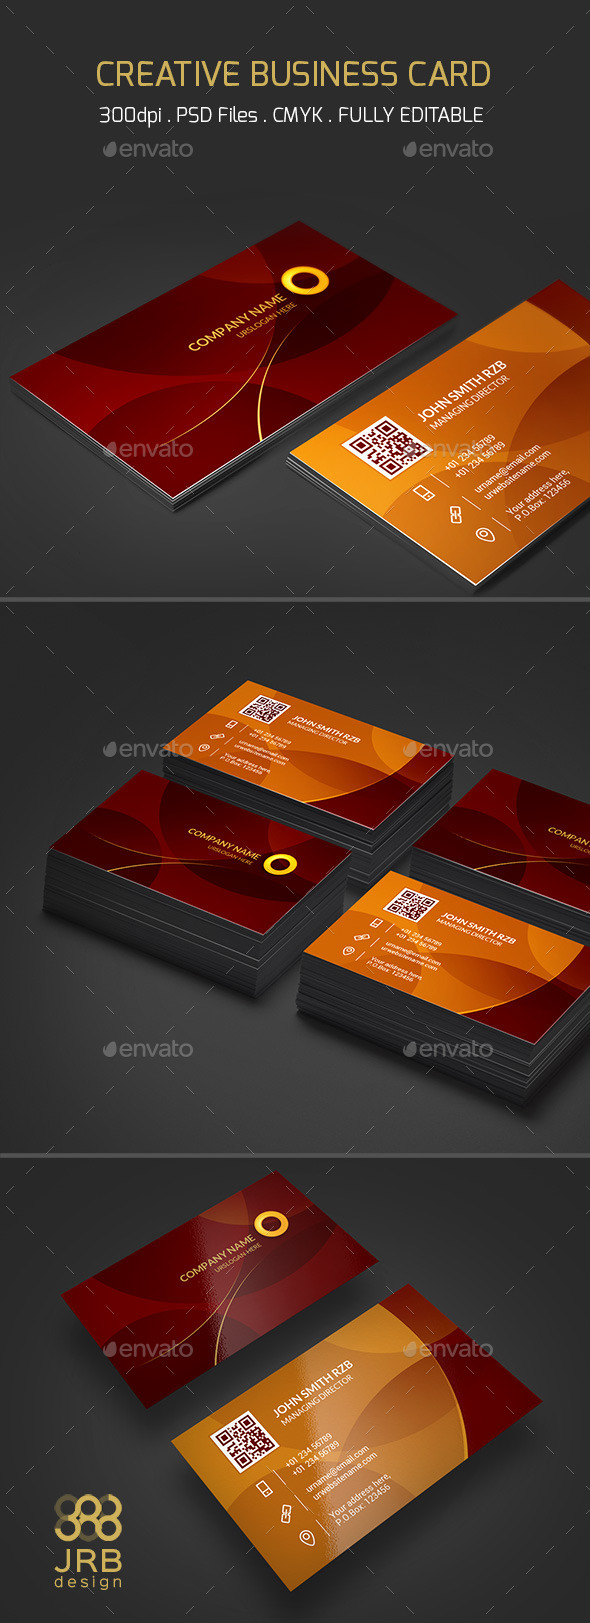 GraphicRiver Creative Business Card 10236155